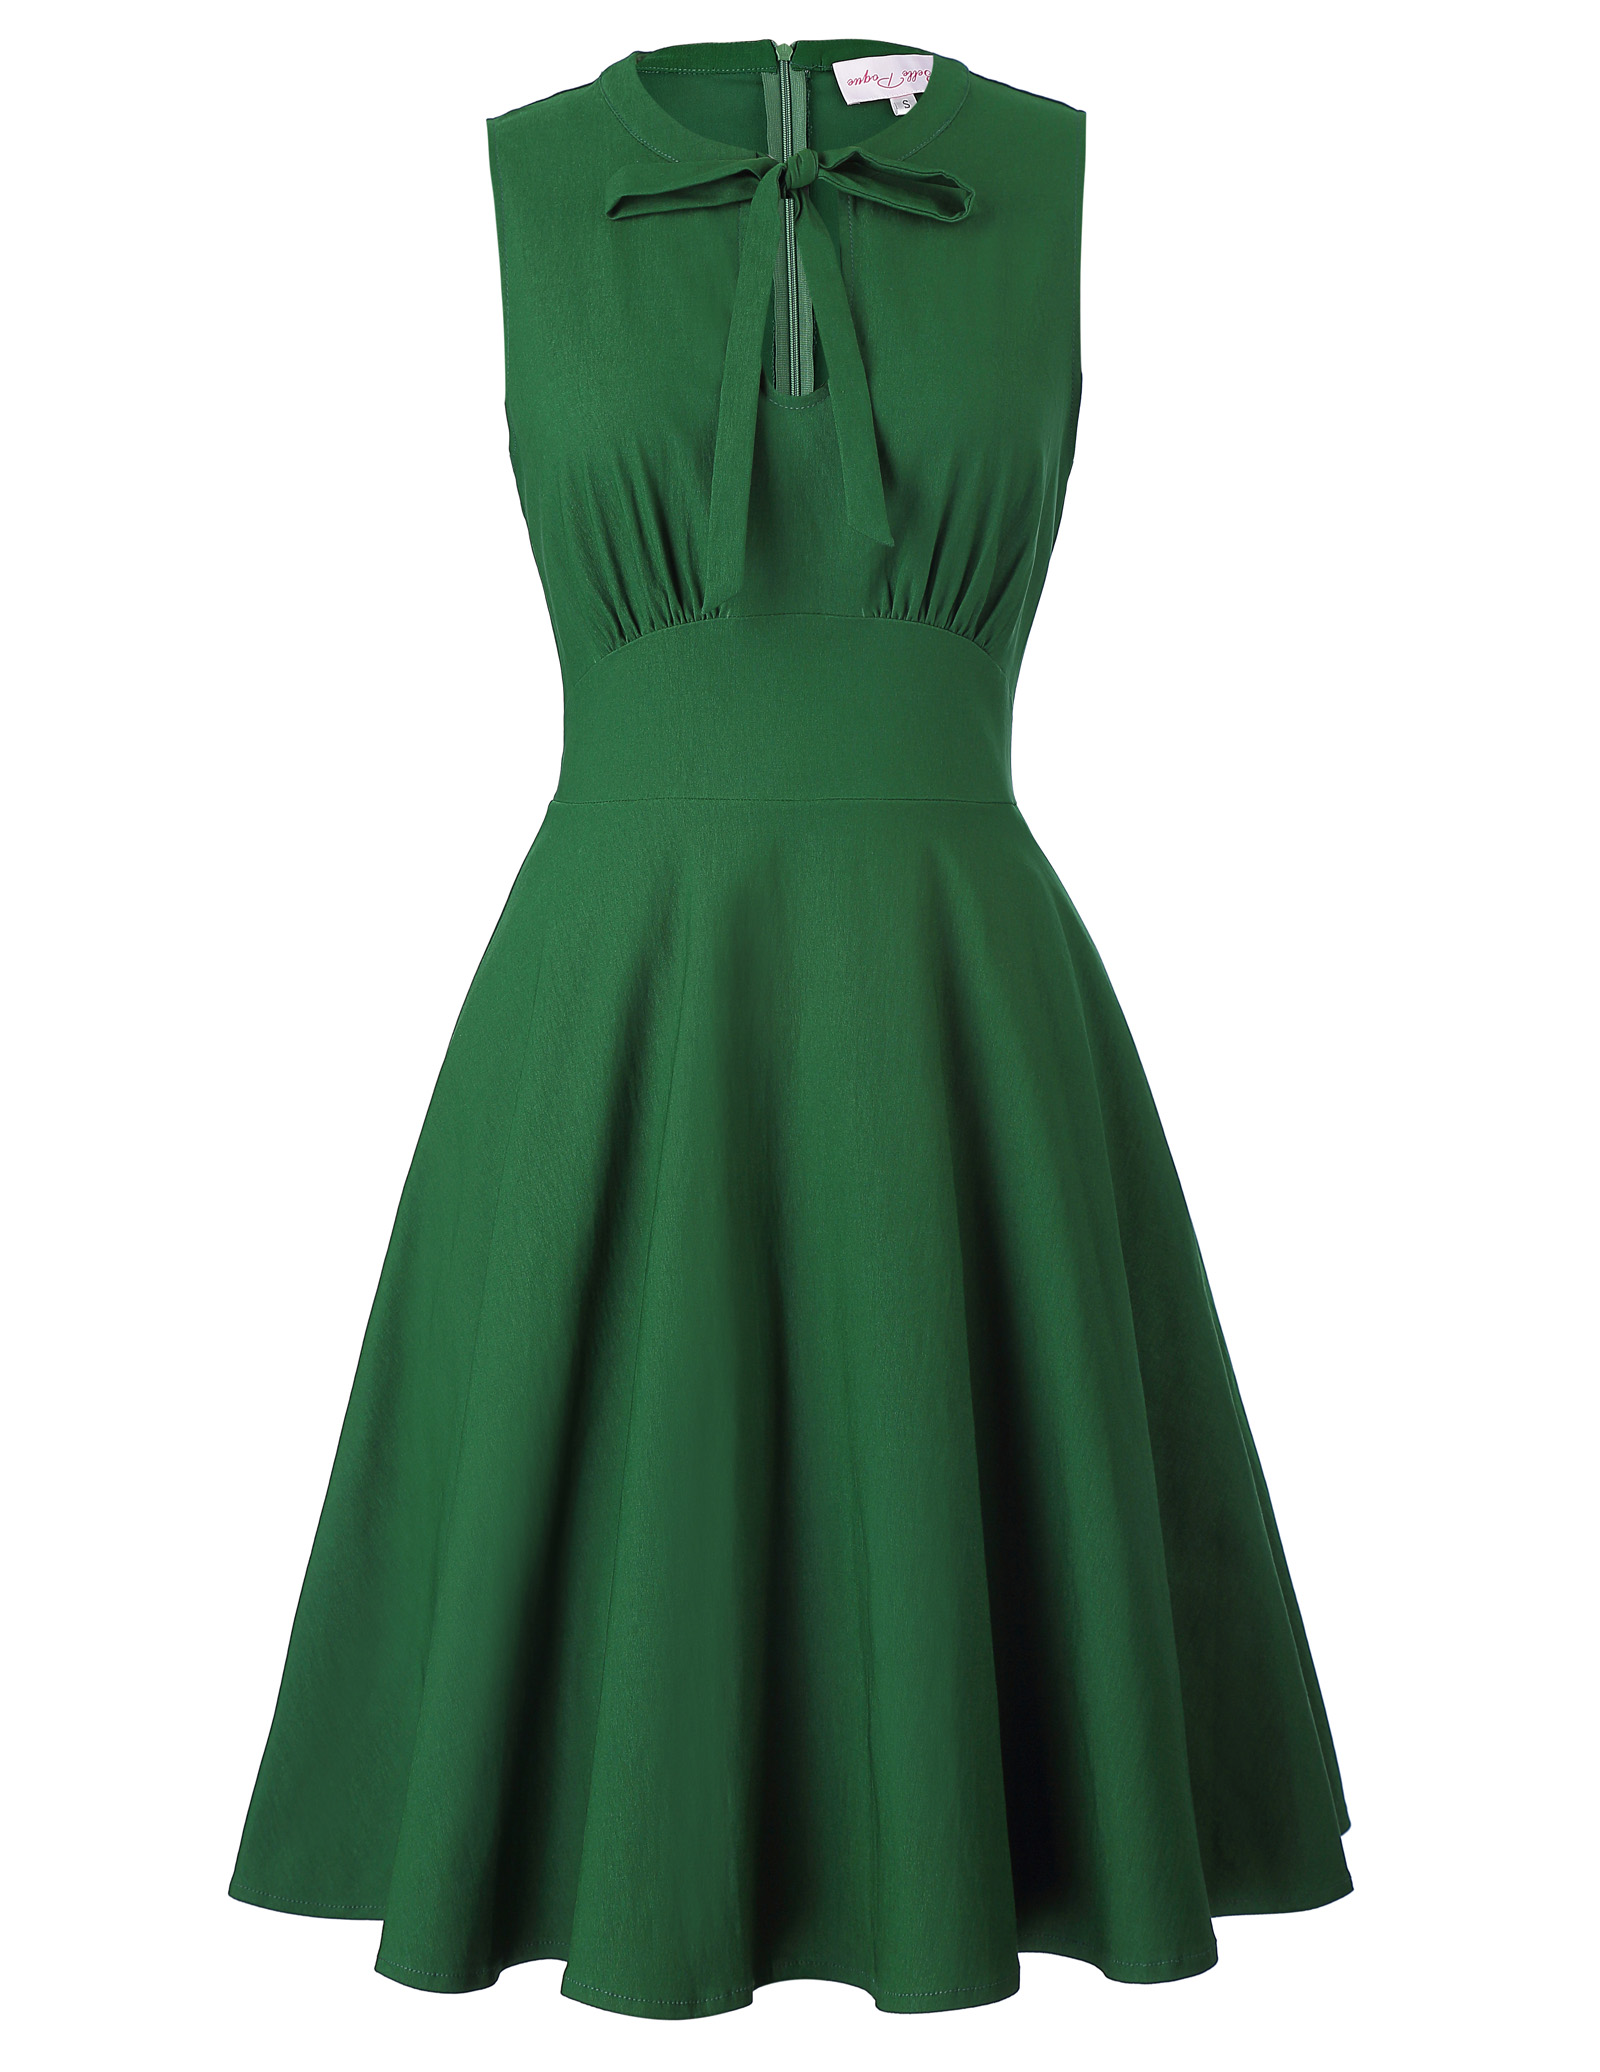 New Sleeveless Tied Neck Dress Elegant Knee Length High Stretch Dresses Women Solid Color Shirred Decor Party A Line Dress Green